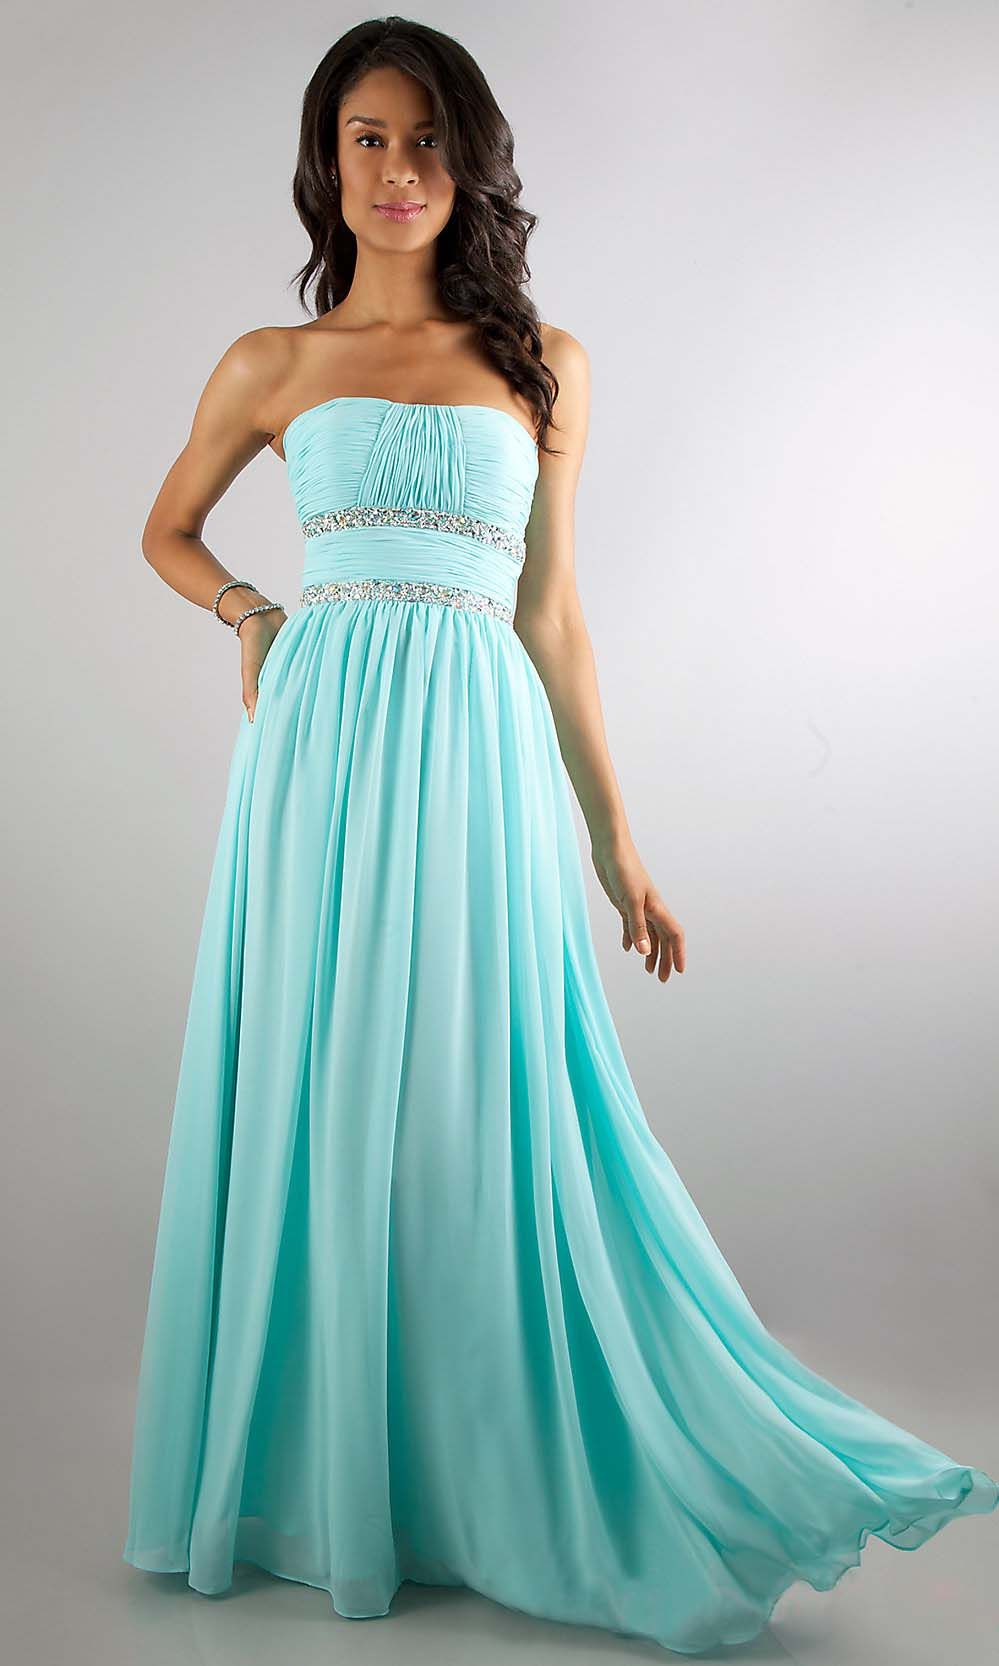 Long tiffany blue bridesmaid dresses 2014 tiffany blue for Wedding dresses with tiffany blue